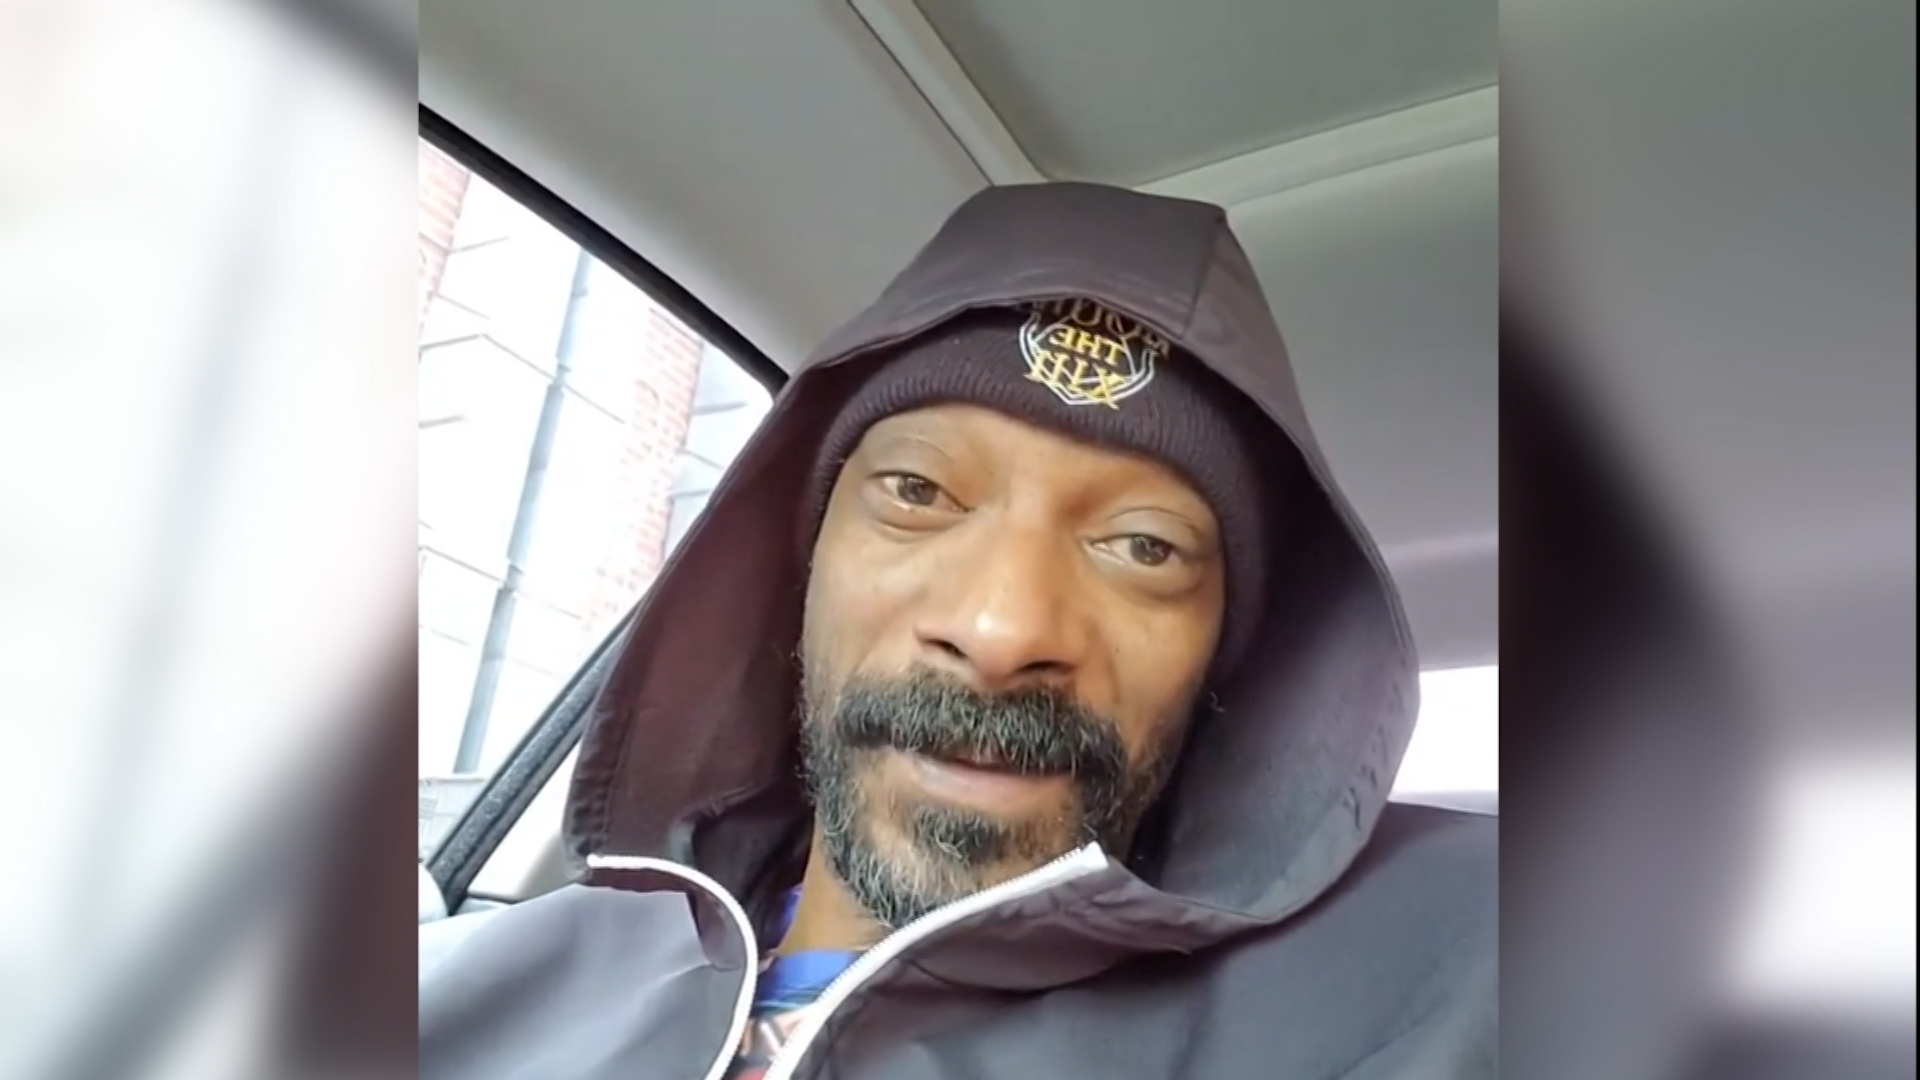 Snoop Dogg stormed off of Twitch, but forgot to turn it off